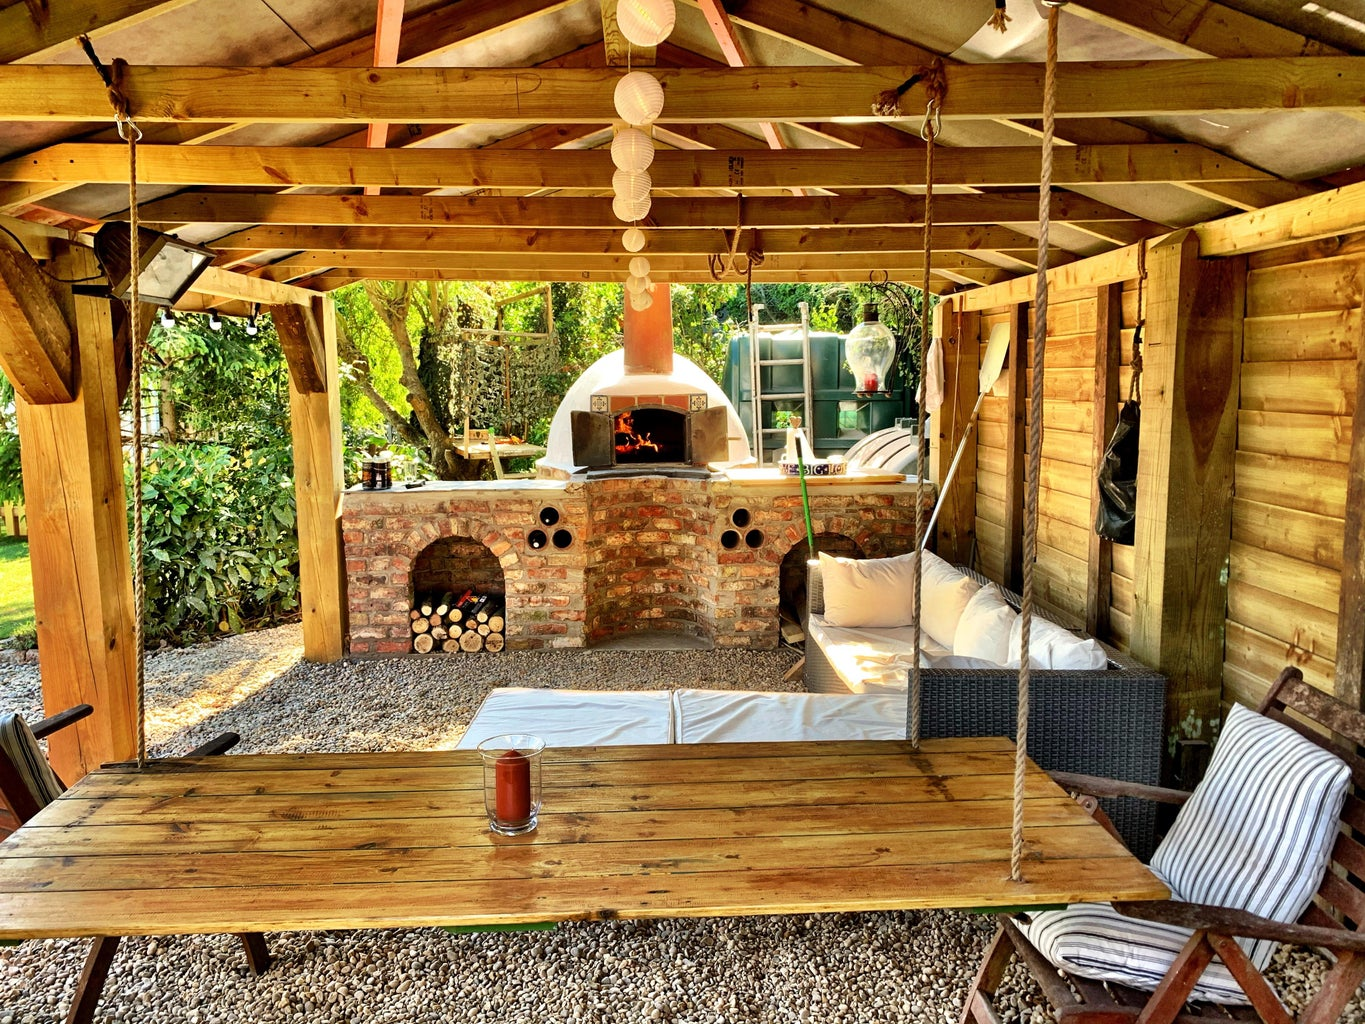 Pizza, Wood Fired Oven Build